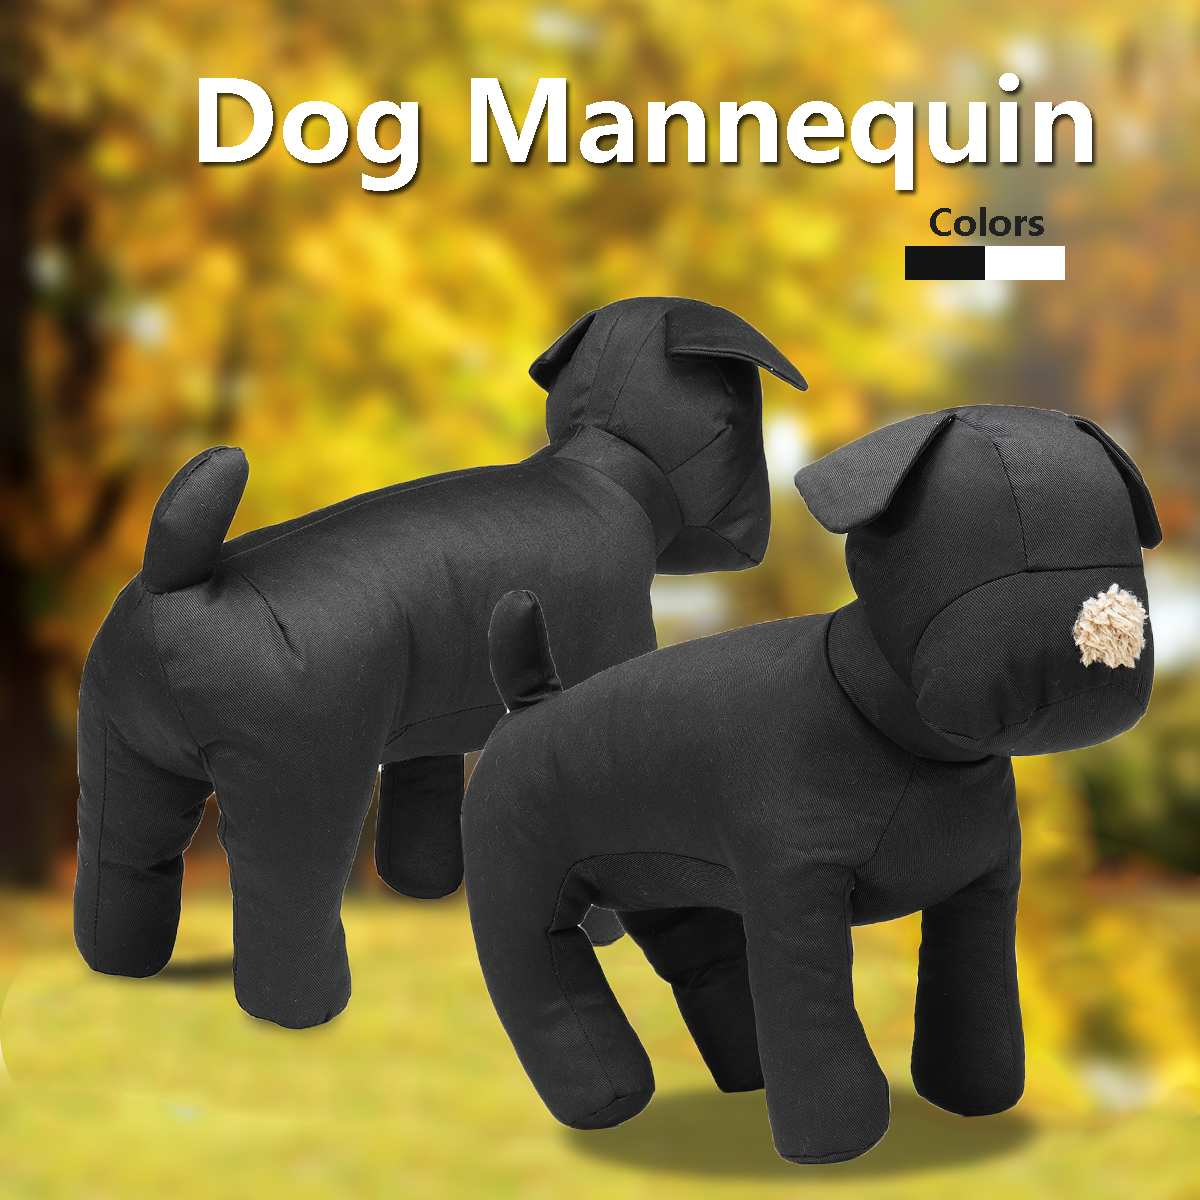 Display Pet Toy Dog Mannequin Cotton Stuffed Model Clothing Apparel Shop Collar Black/White Adjusted Leg Poses For Retail Store